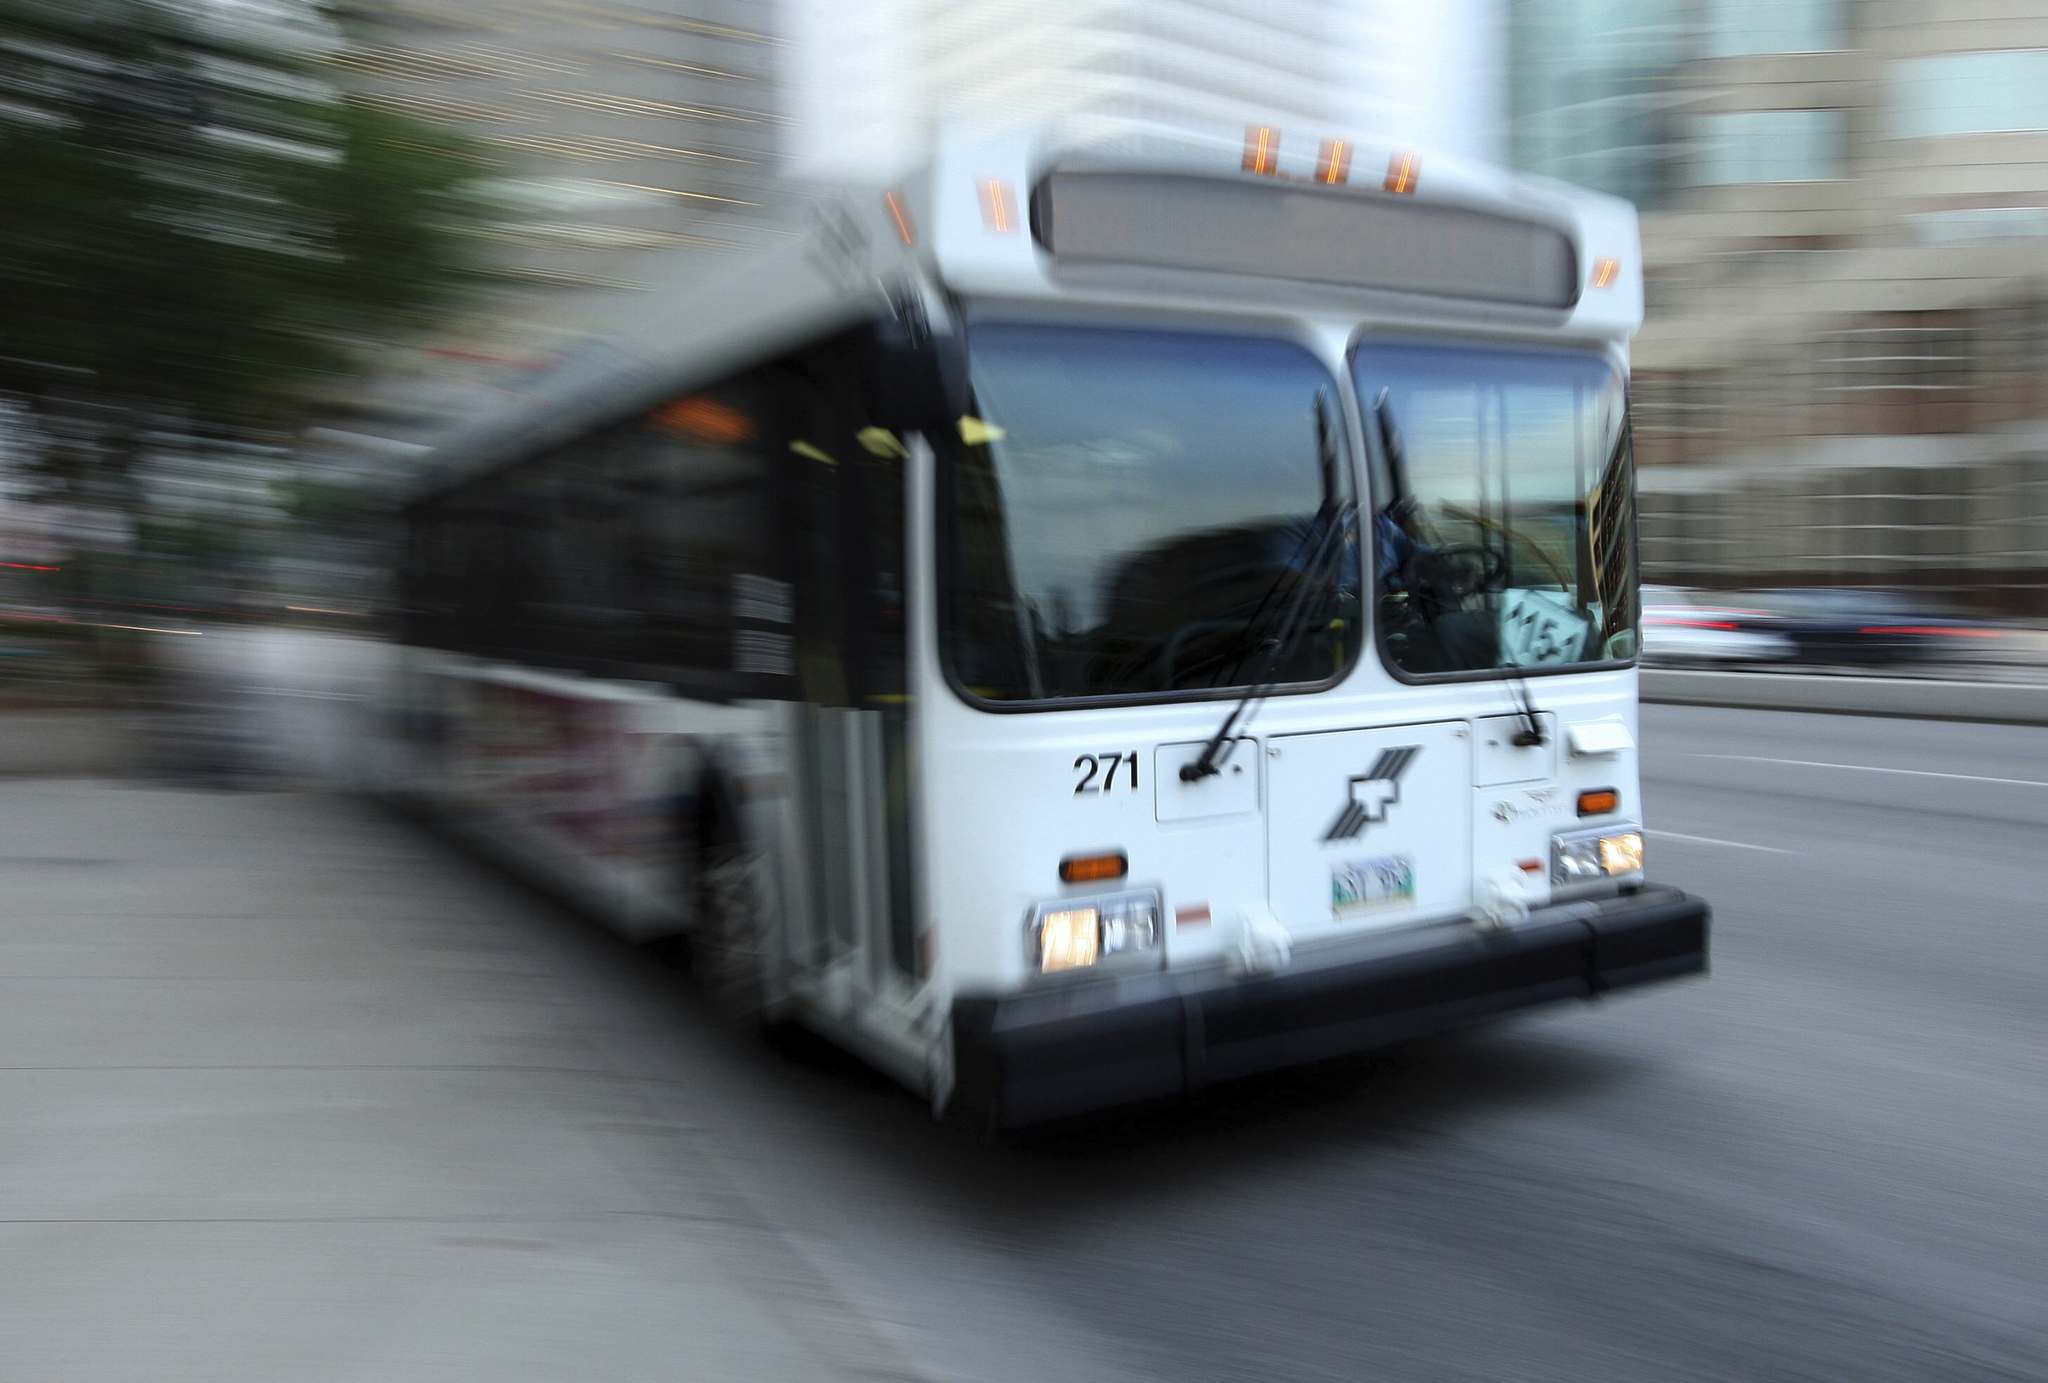 KEN GIGLIOTTI / FREE PRESS FILES</p><p>Initially, city officials believed the province&rsquo;s decision would result in a $5-million cut to Winnipeg Transit, but the impact is more severe &mdash; it&rsquo;s now estimated to be $8 million this year alone and will continue going forward.</p>